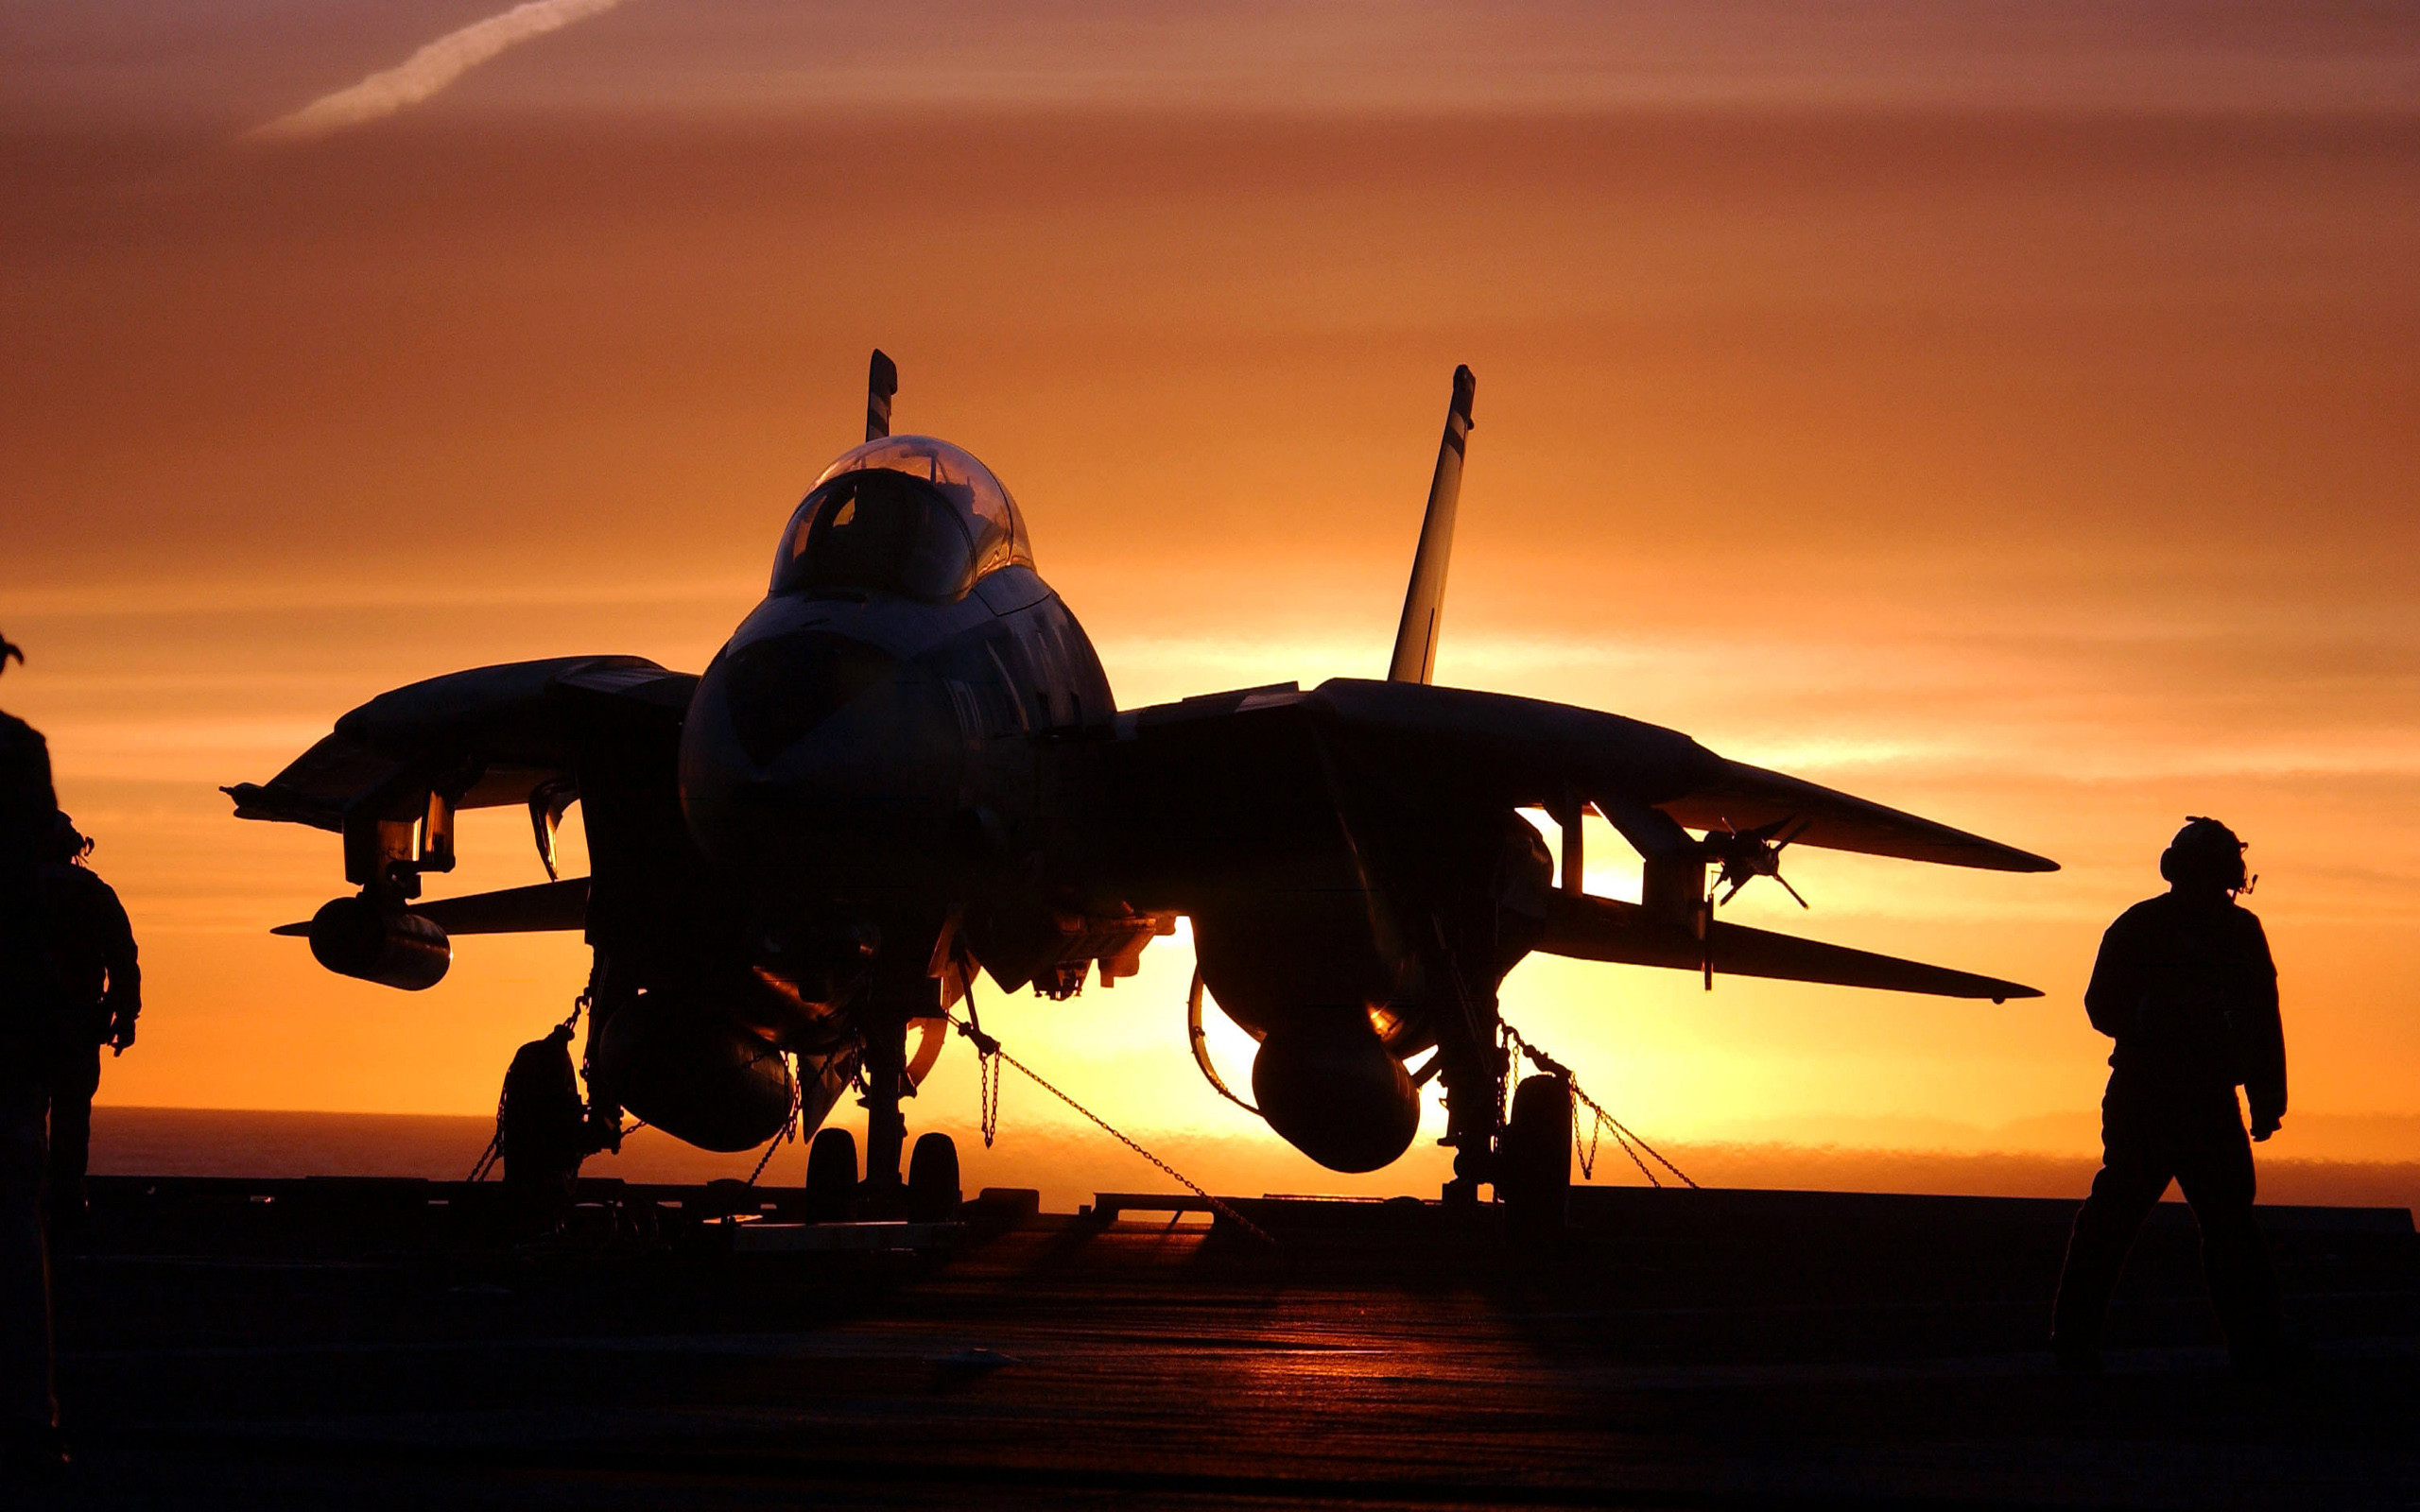 awesome Sukhoi Su-27 Wallpaper   Free Download Cool HD wallpapers    Pinterest   Sukhoi and Wallpaper